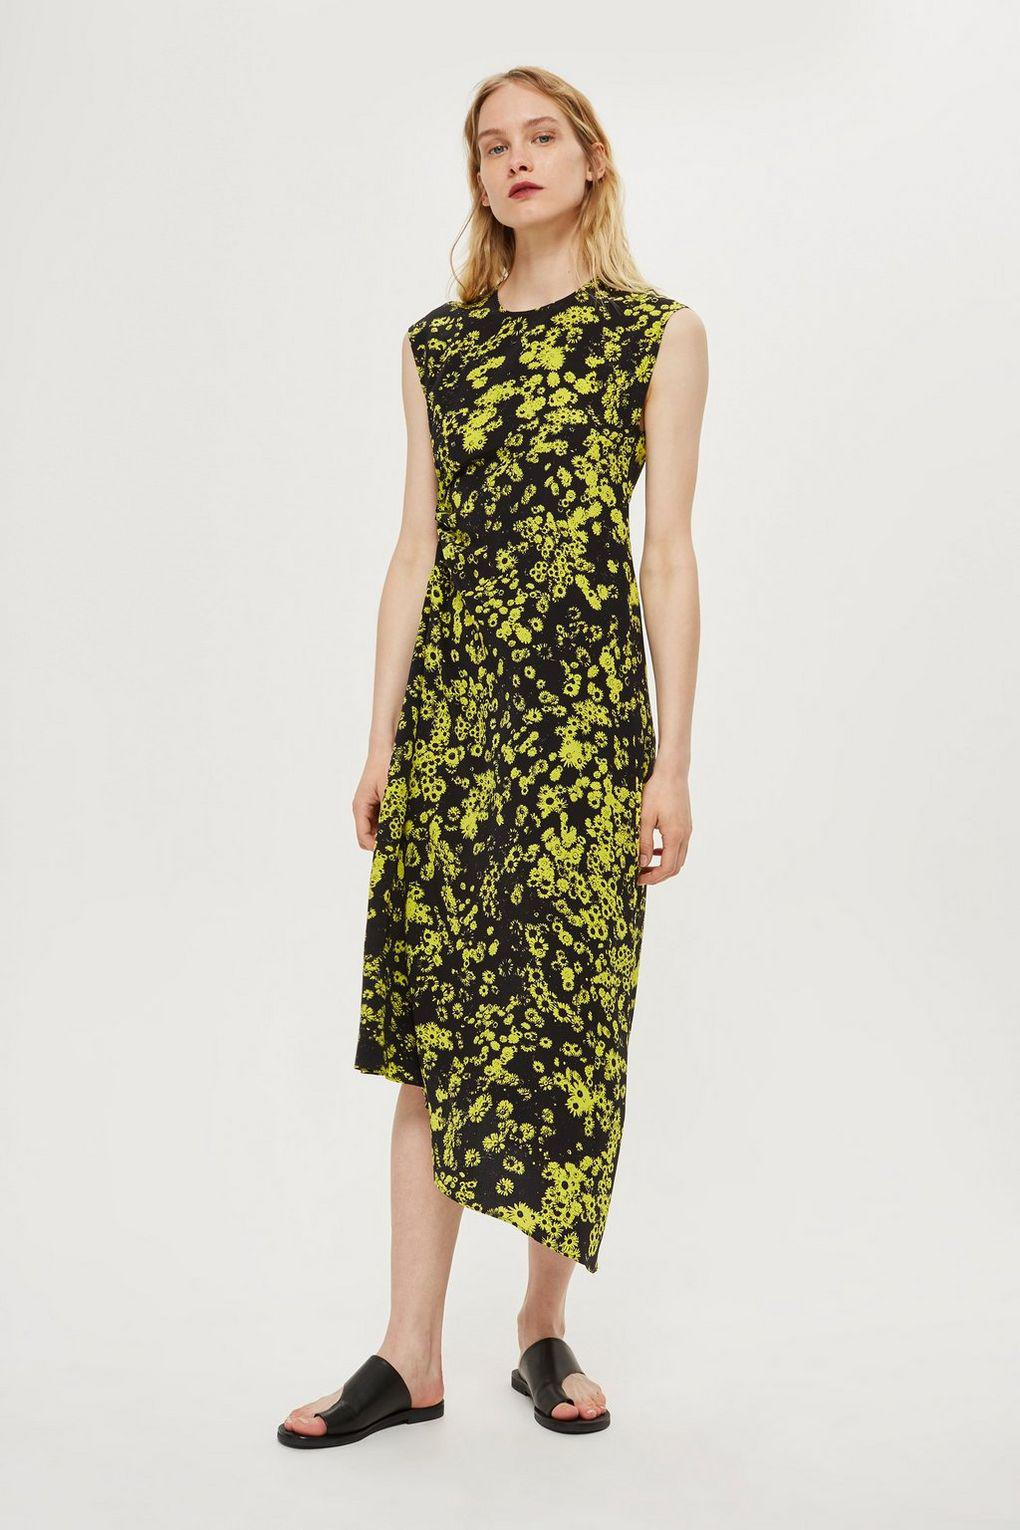 topshop-MULTI-Daisy-Print-Dress-By-Boutique